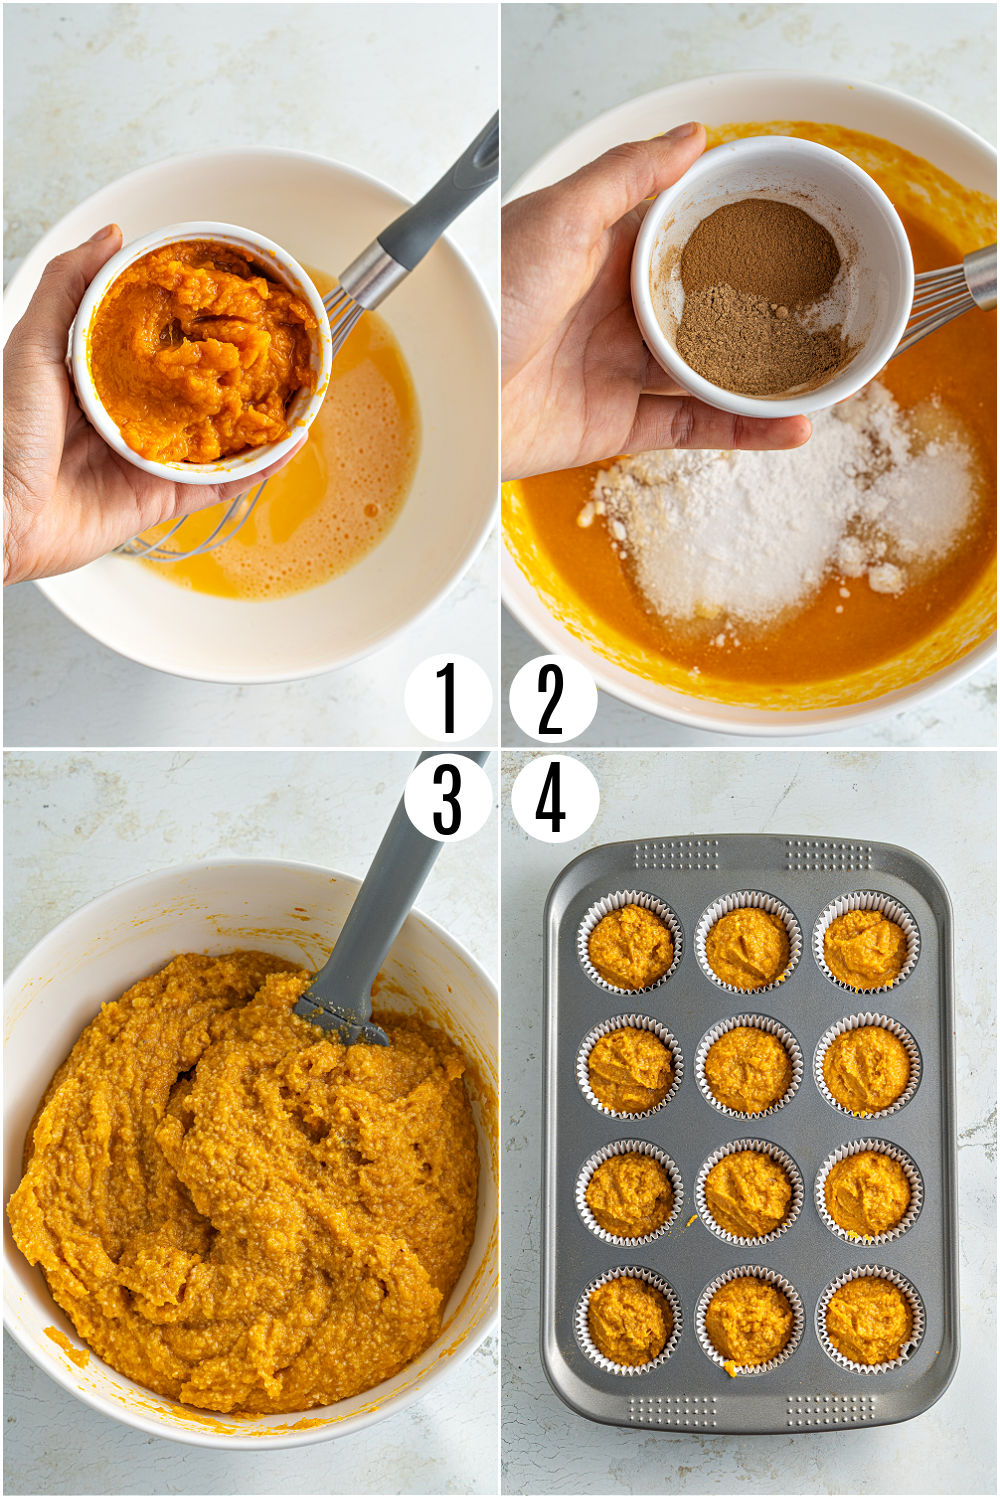 Step by step photos showing how to make pumpkin muffins.